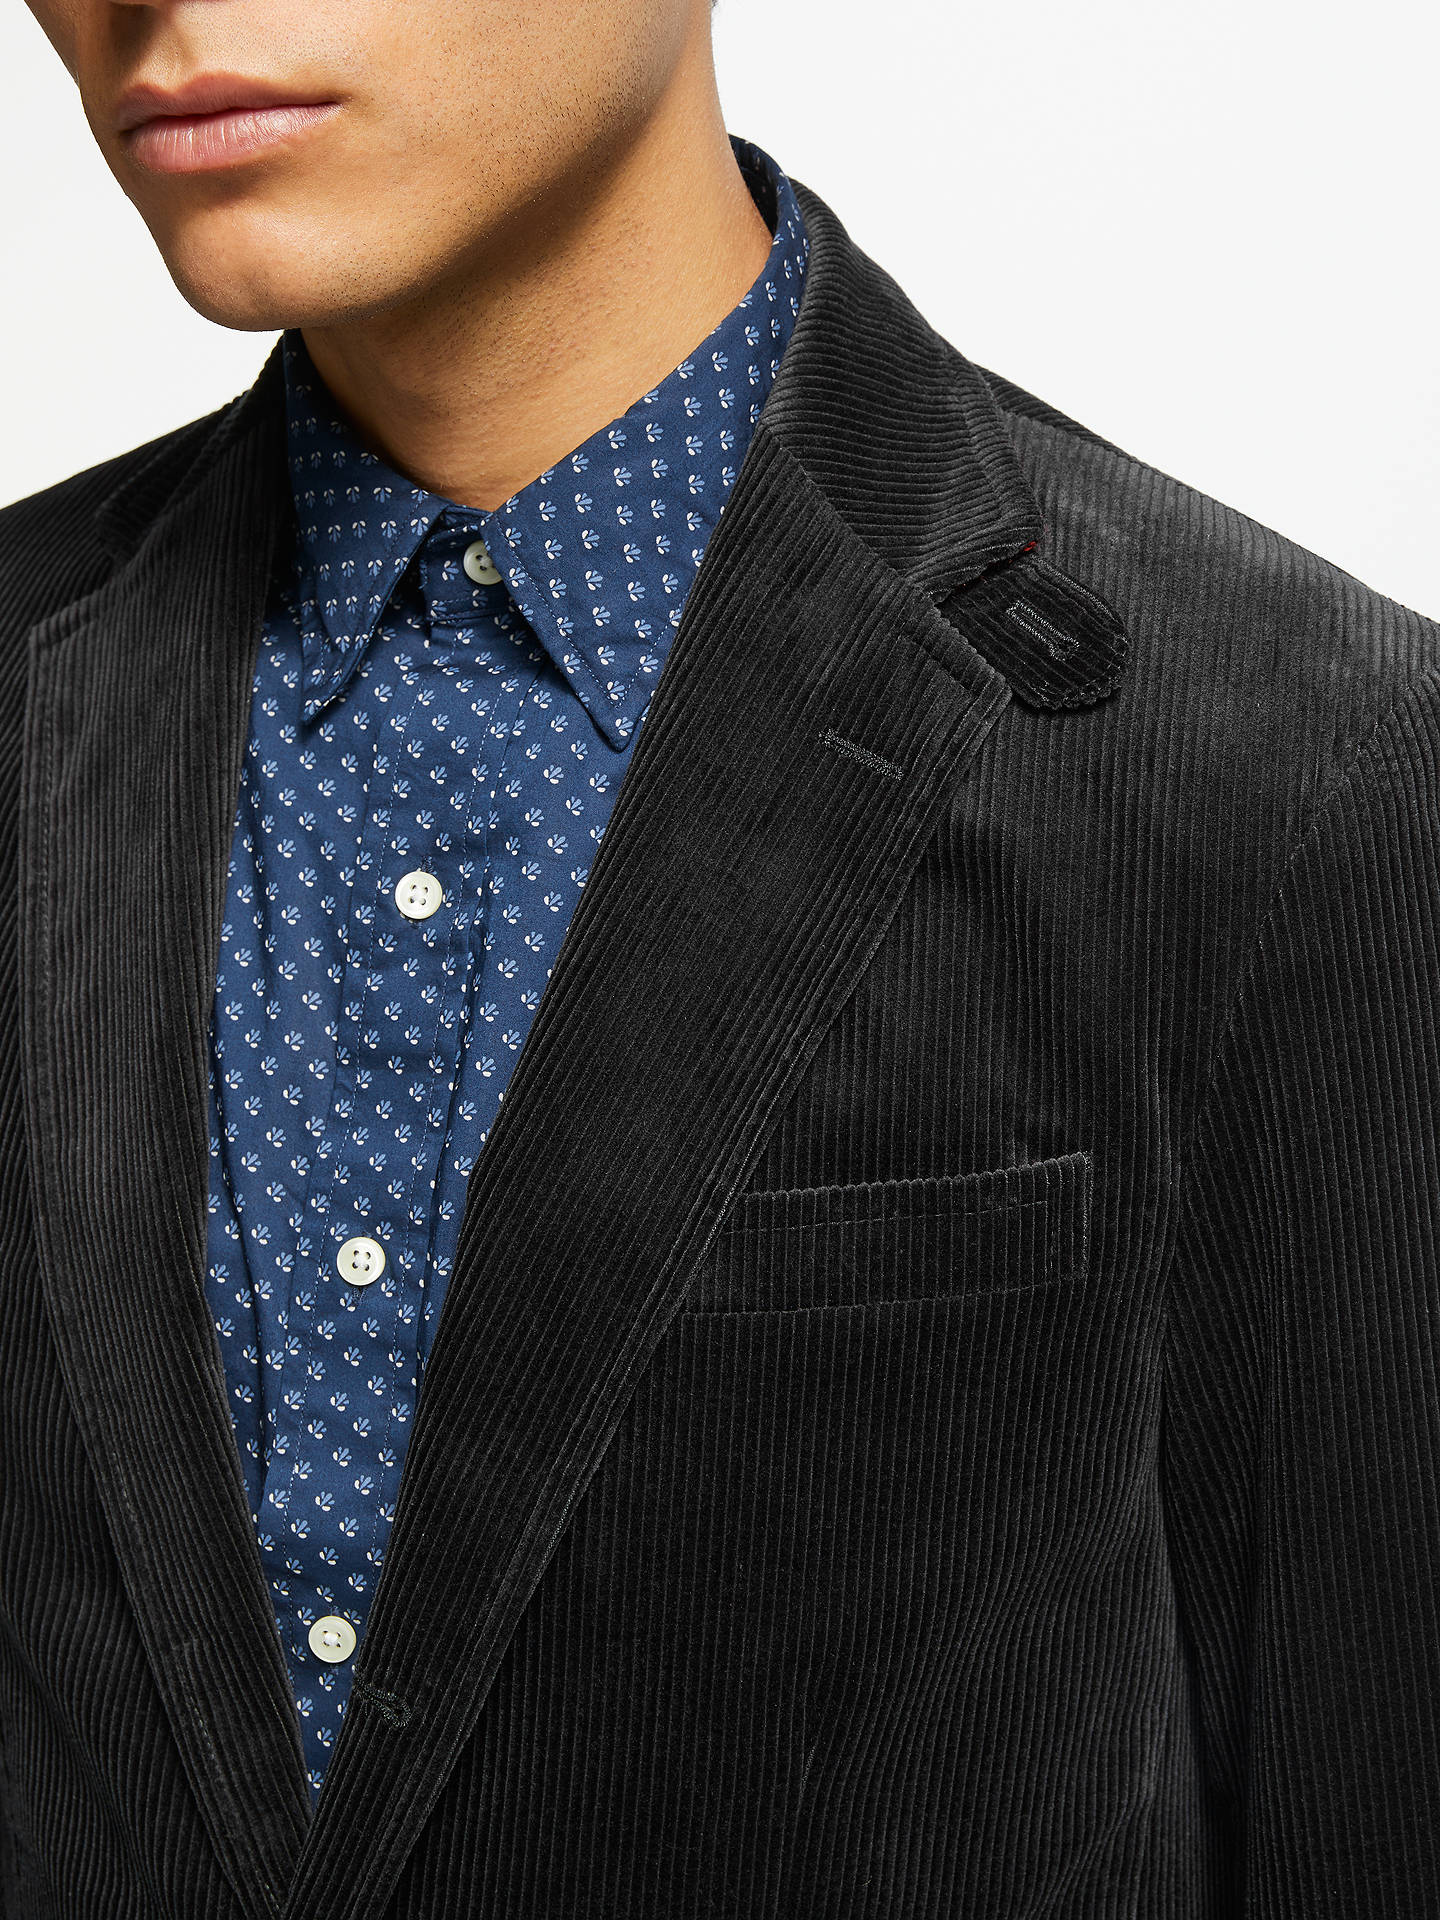 Buy Polo Ralph Lauren Corduroy Blazer, Black, XL Online at johnlewis.com